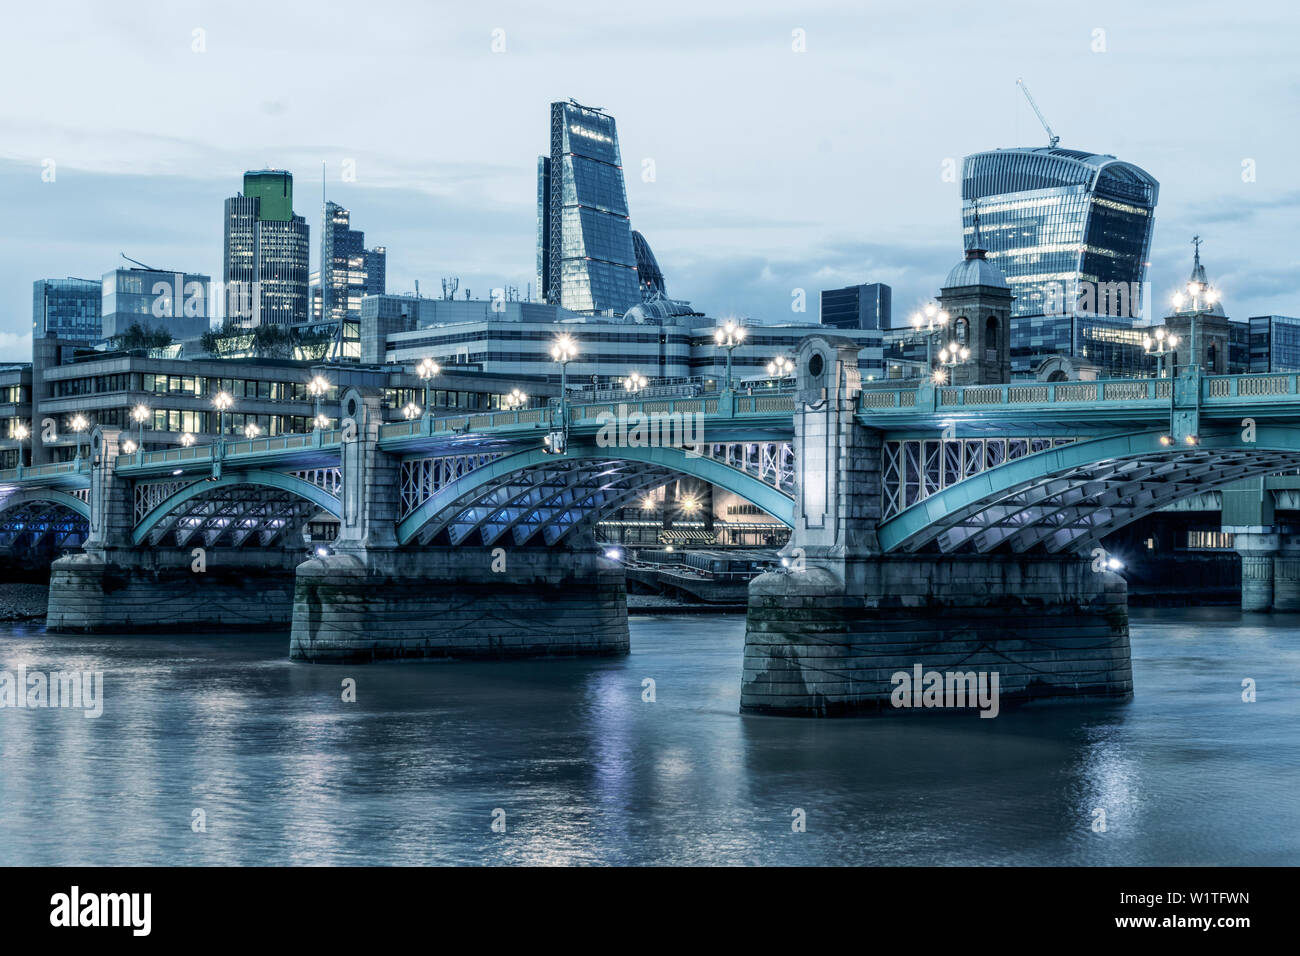 River Thames, Modern Architecture in Financial District in City of London, The Goerkin , Tower 42, Leadenhall Building, Southwark Bridge, UK - Stock Image